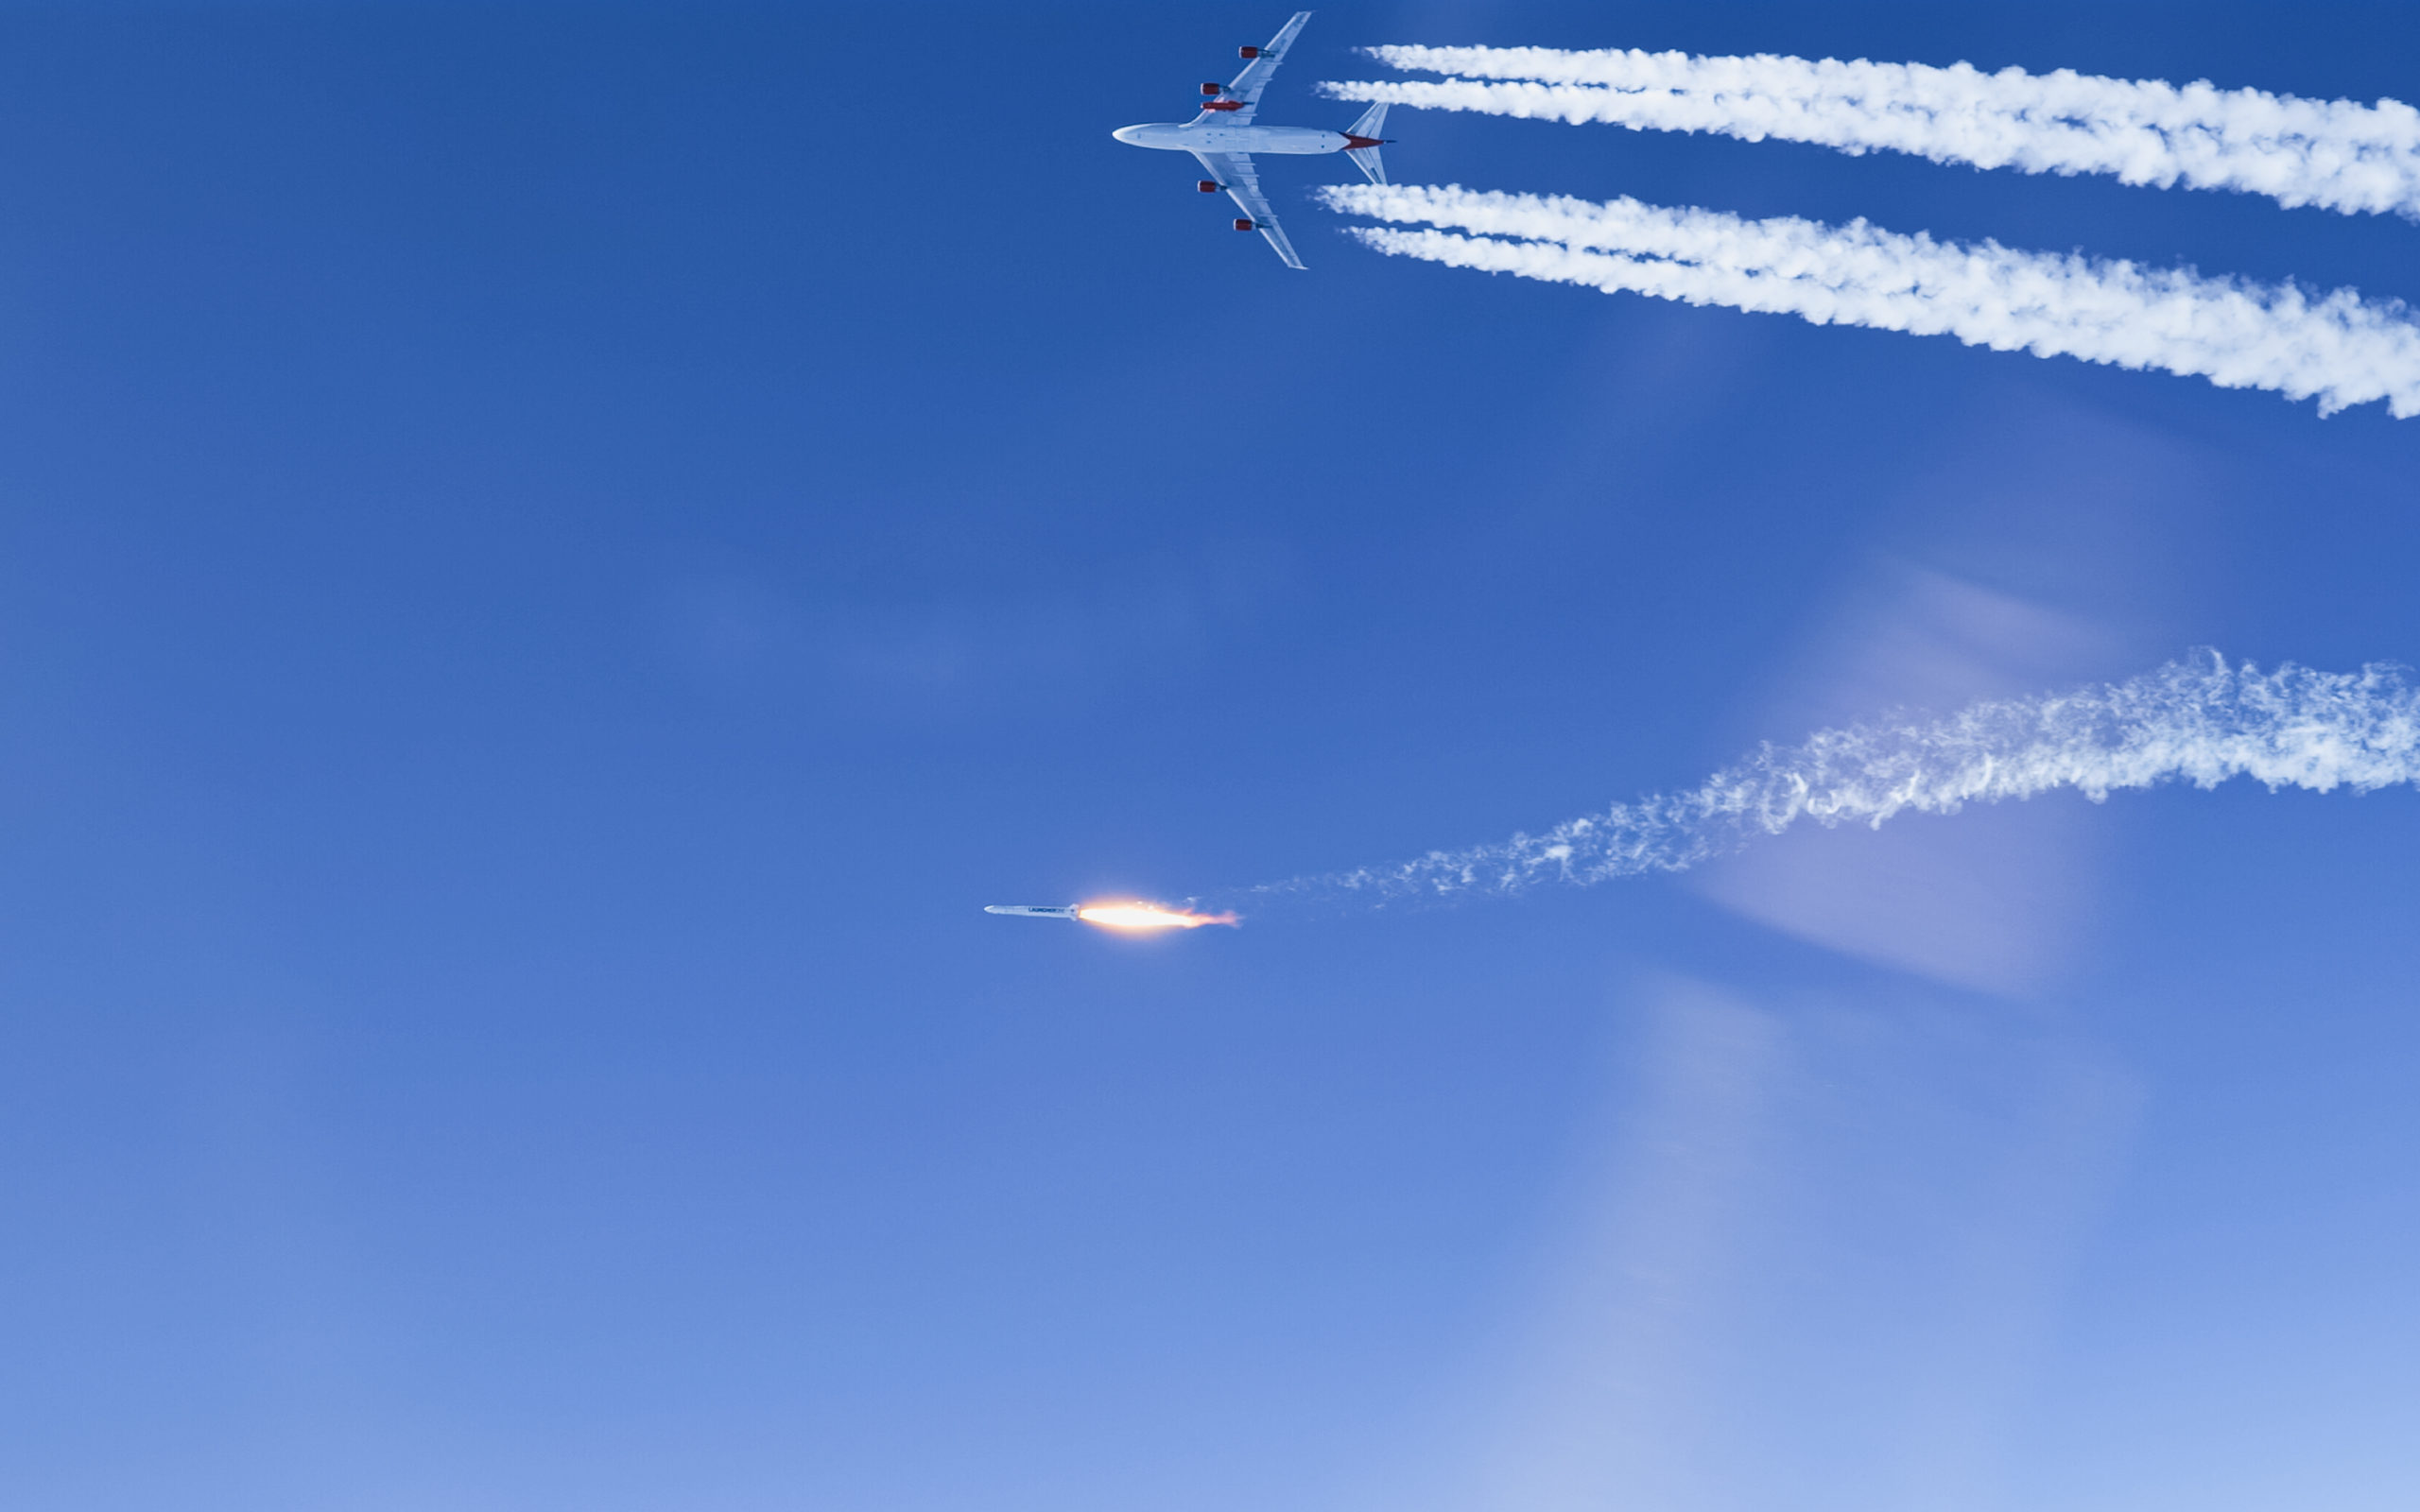 - Ignition 13 scaled 1 - Pegasus XL rocket to carry out Tactically Responsive Launch demo for Space Force